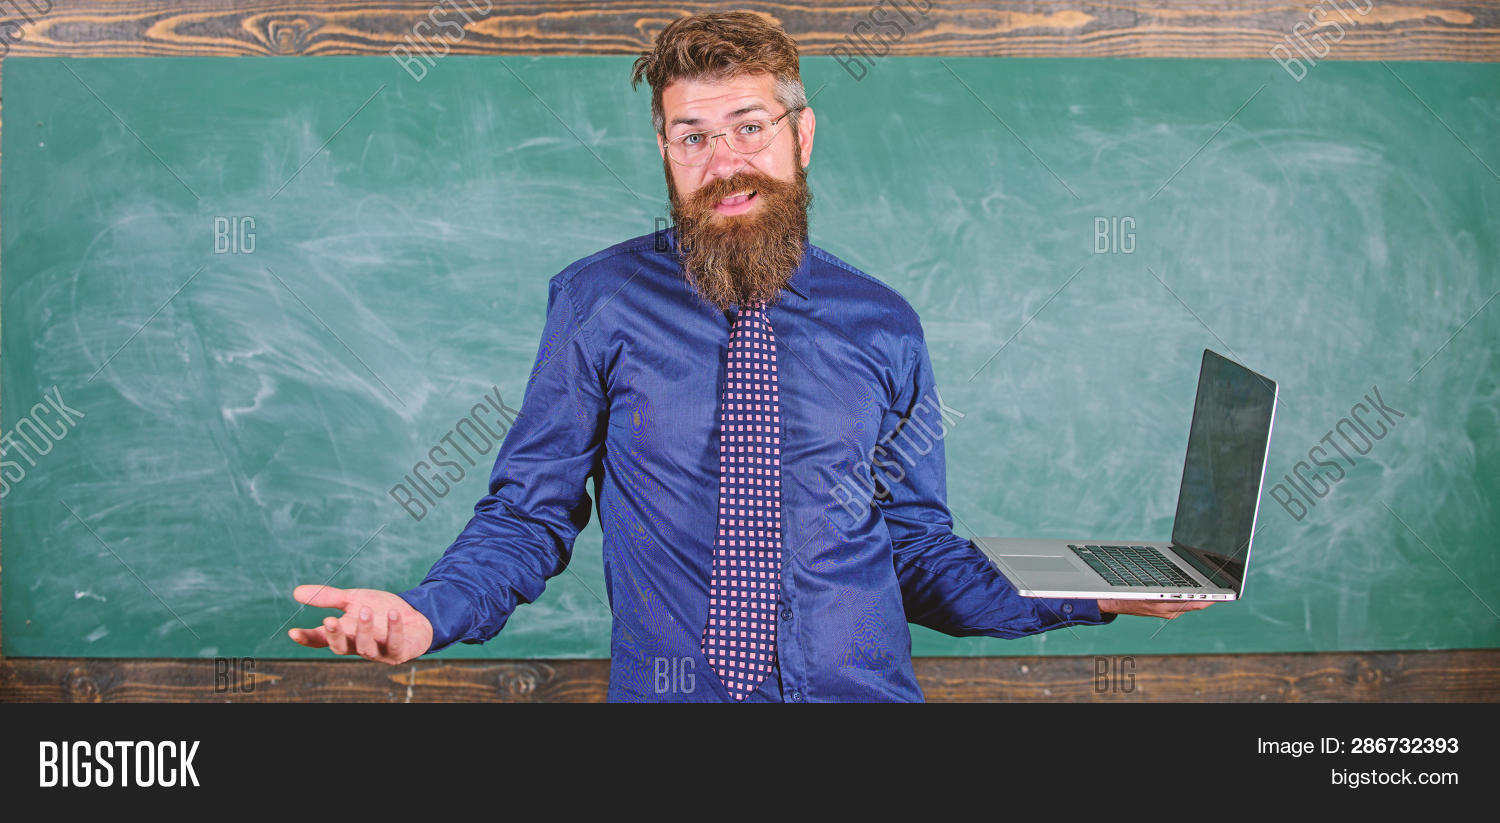 adult,back,background,beard,bearded,blackboard,caucasian,chalkboard,computer,confused,confusing,confusion,director,distance,education,examiner,expression,formal,handsome,headteacher,hipster,hold,intelligent,issue,knowledge,laptop,learn,male,man,mature,modern,moustache,mustache,notebook,professor,smart,smile,study,teach,teacher,technology,unshaven,use,wonder,work